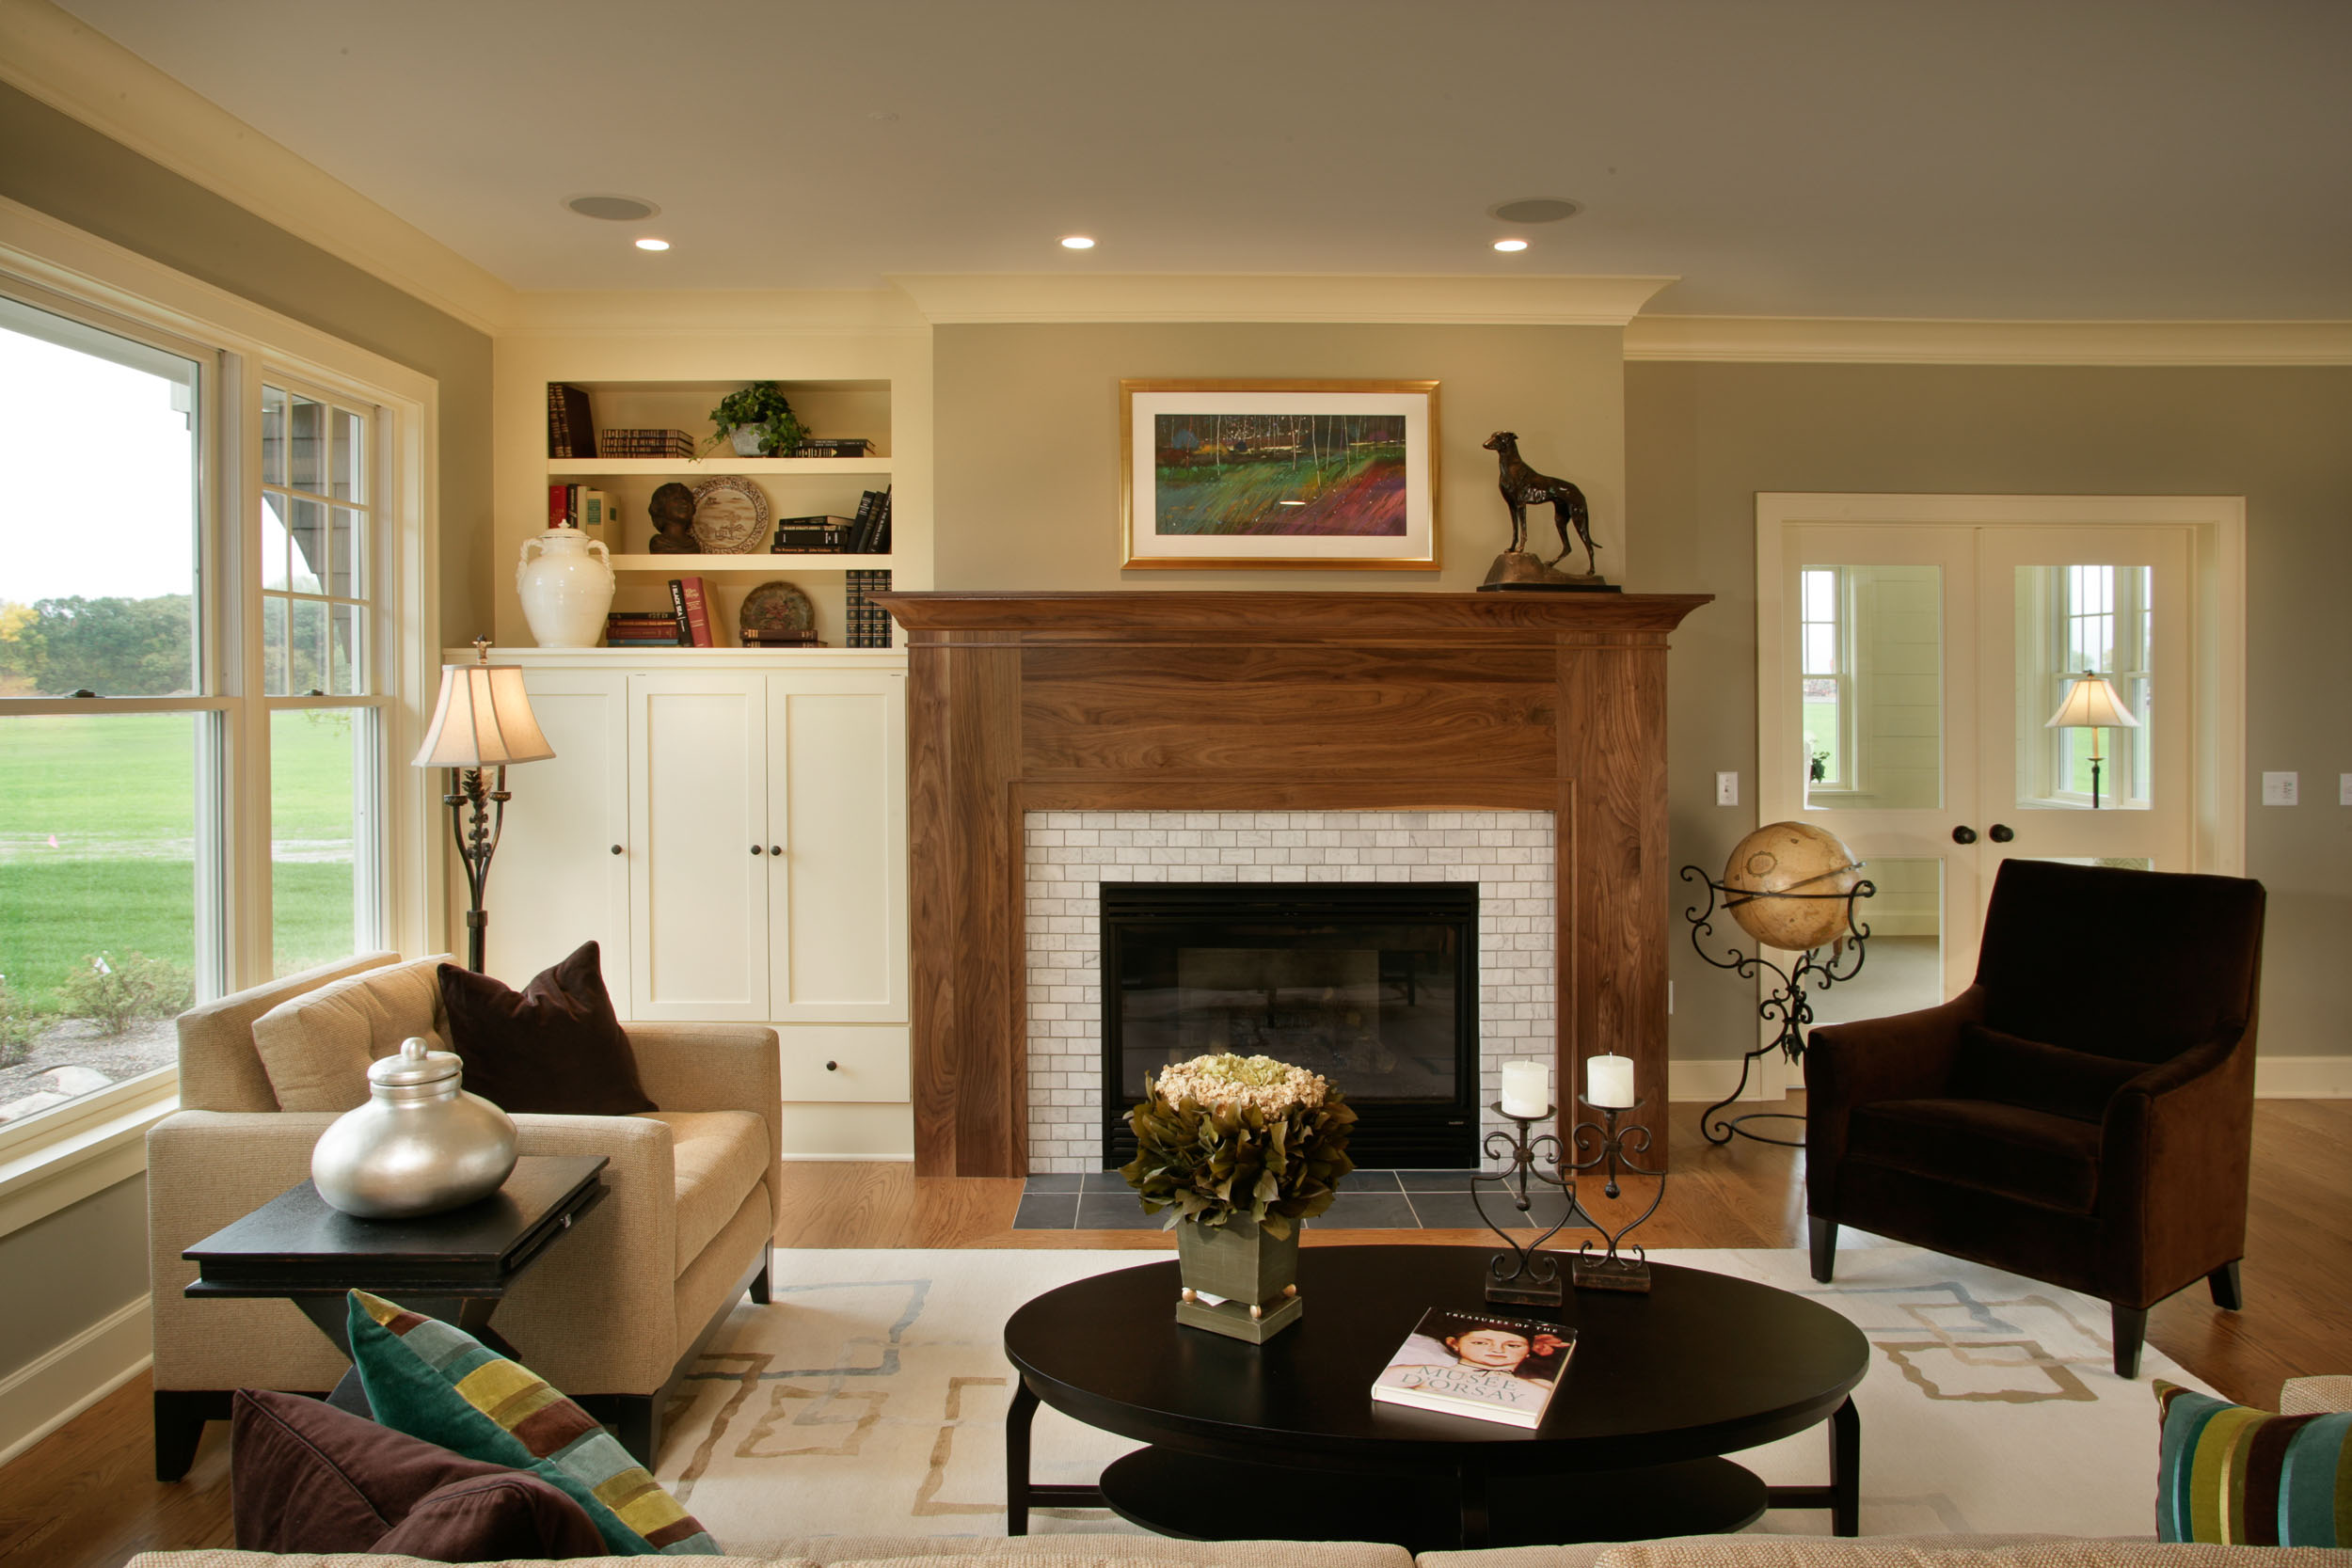 Cape Cod Fireplace Image